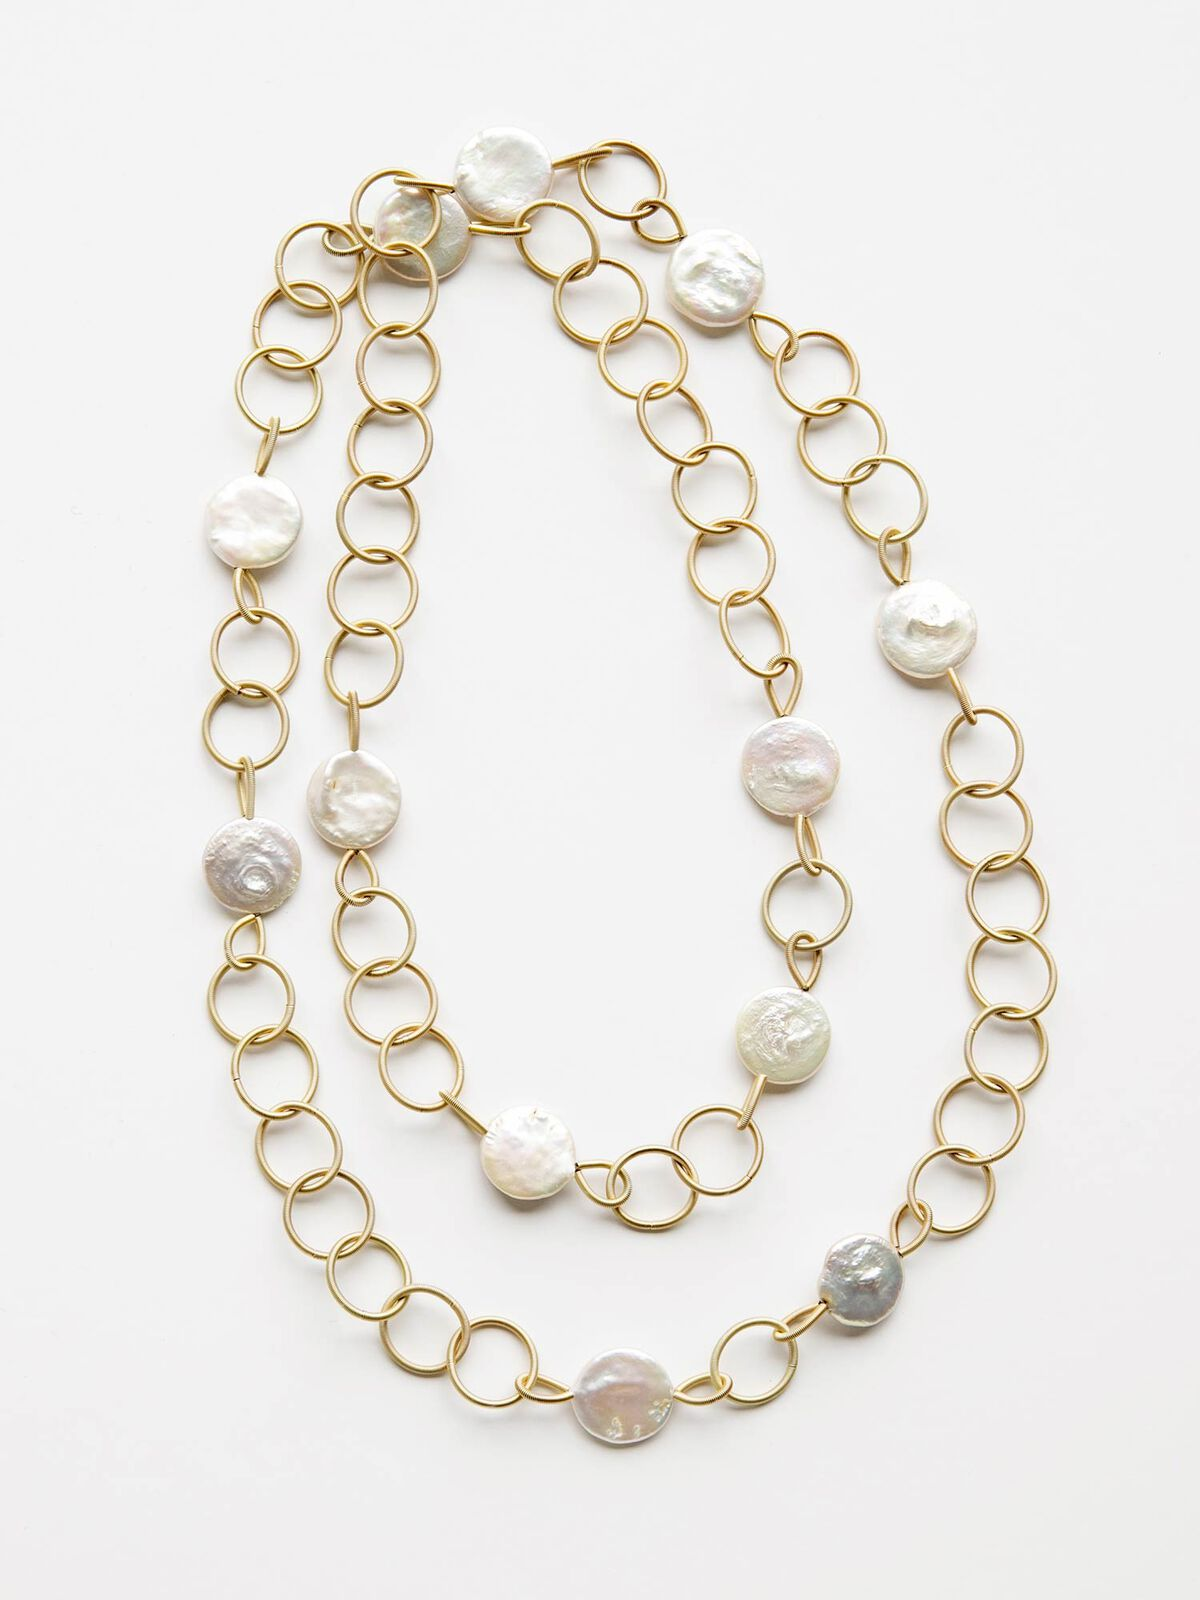 Sea Lily Piano Wire Loop Necklace with Coin Pearls